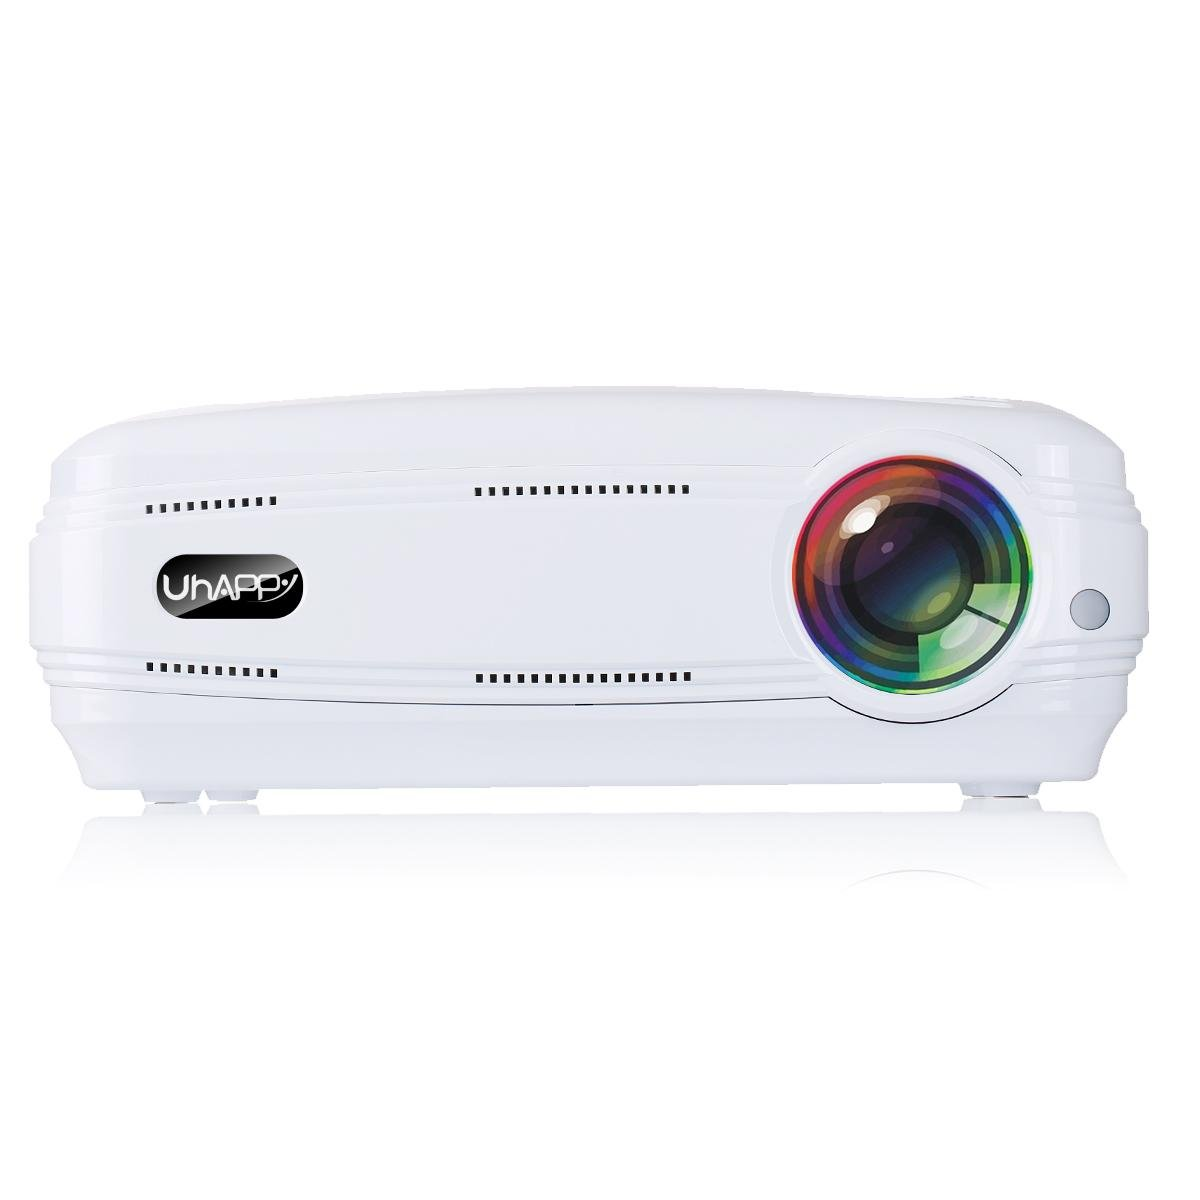 GAOHAILONG UHAPPY Home HD projector 3200 lumens 1080P 20000 hours LED life LED Office Slide projector, white by GAOHAILONG